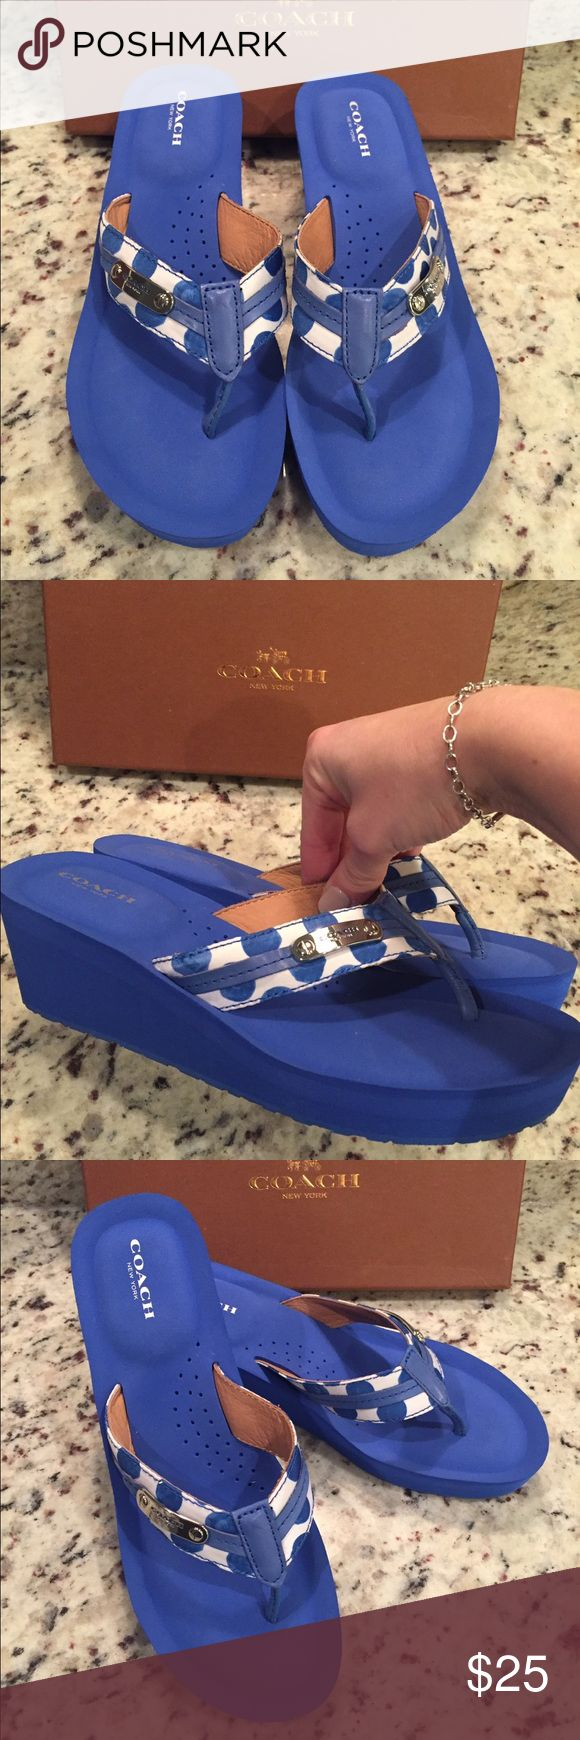 NWOT Coach Polka Dot flip flops !! Coach flip flops ! Brand NWOT in box ! Blue and white wedge sandal . Size 8.5 . I'm open to reasonable offers! Coach Shoes Sandals